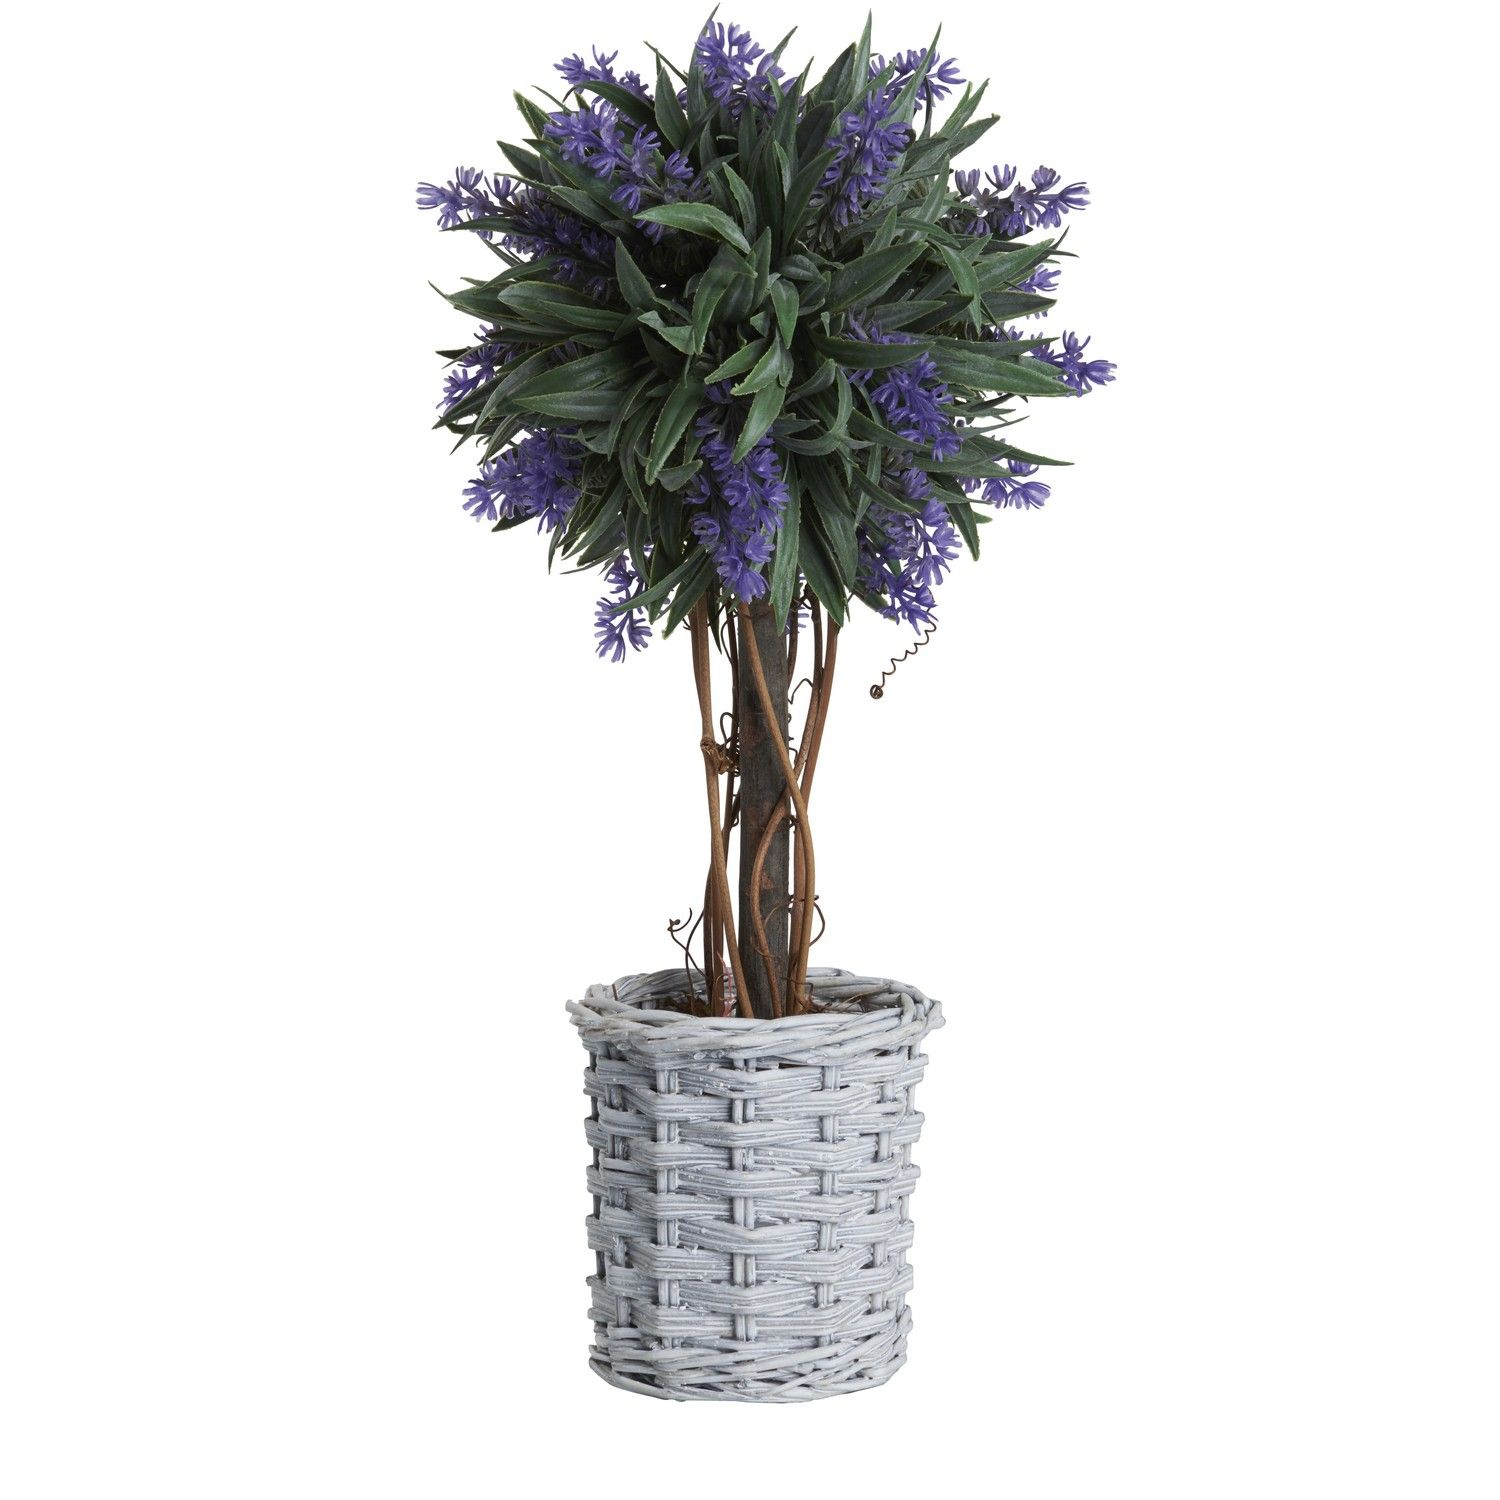 Buy Artificial Plants Buy Lavender Ball Tree In Willow Basket Artificial